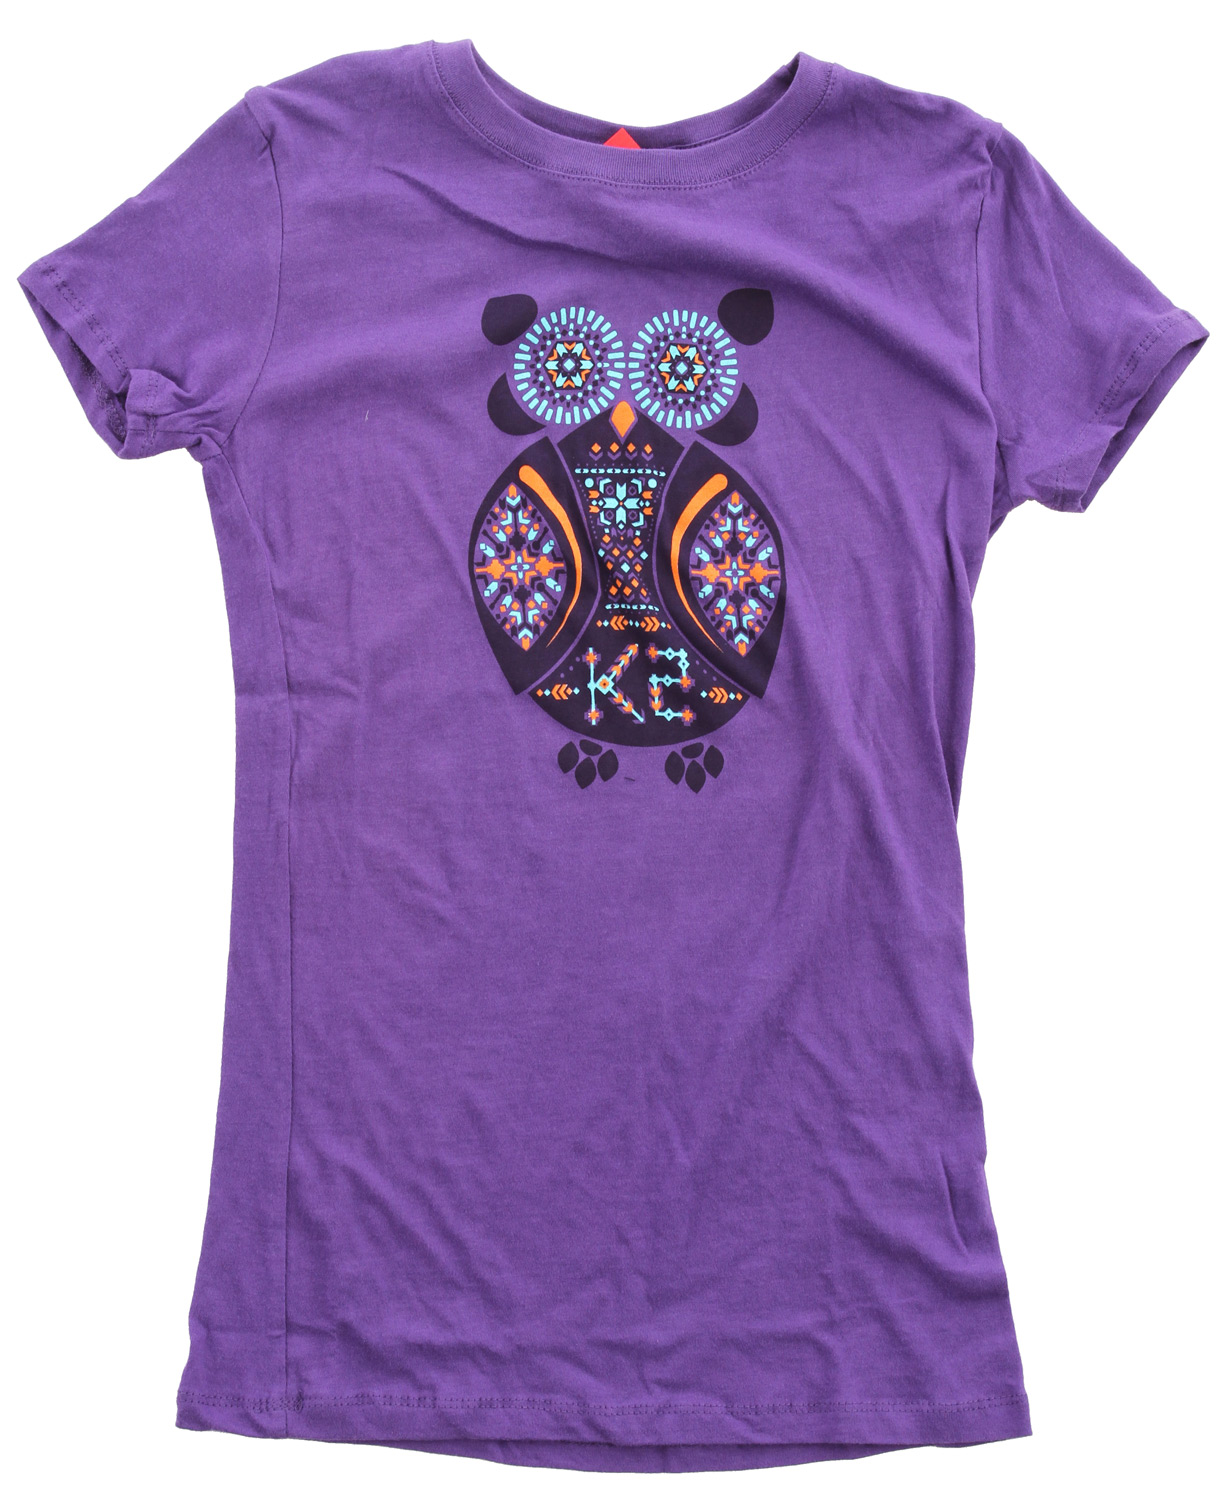 Snowboard This shirt is a hoot. 100% Cotton - $15.95